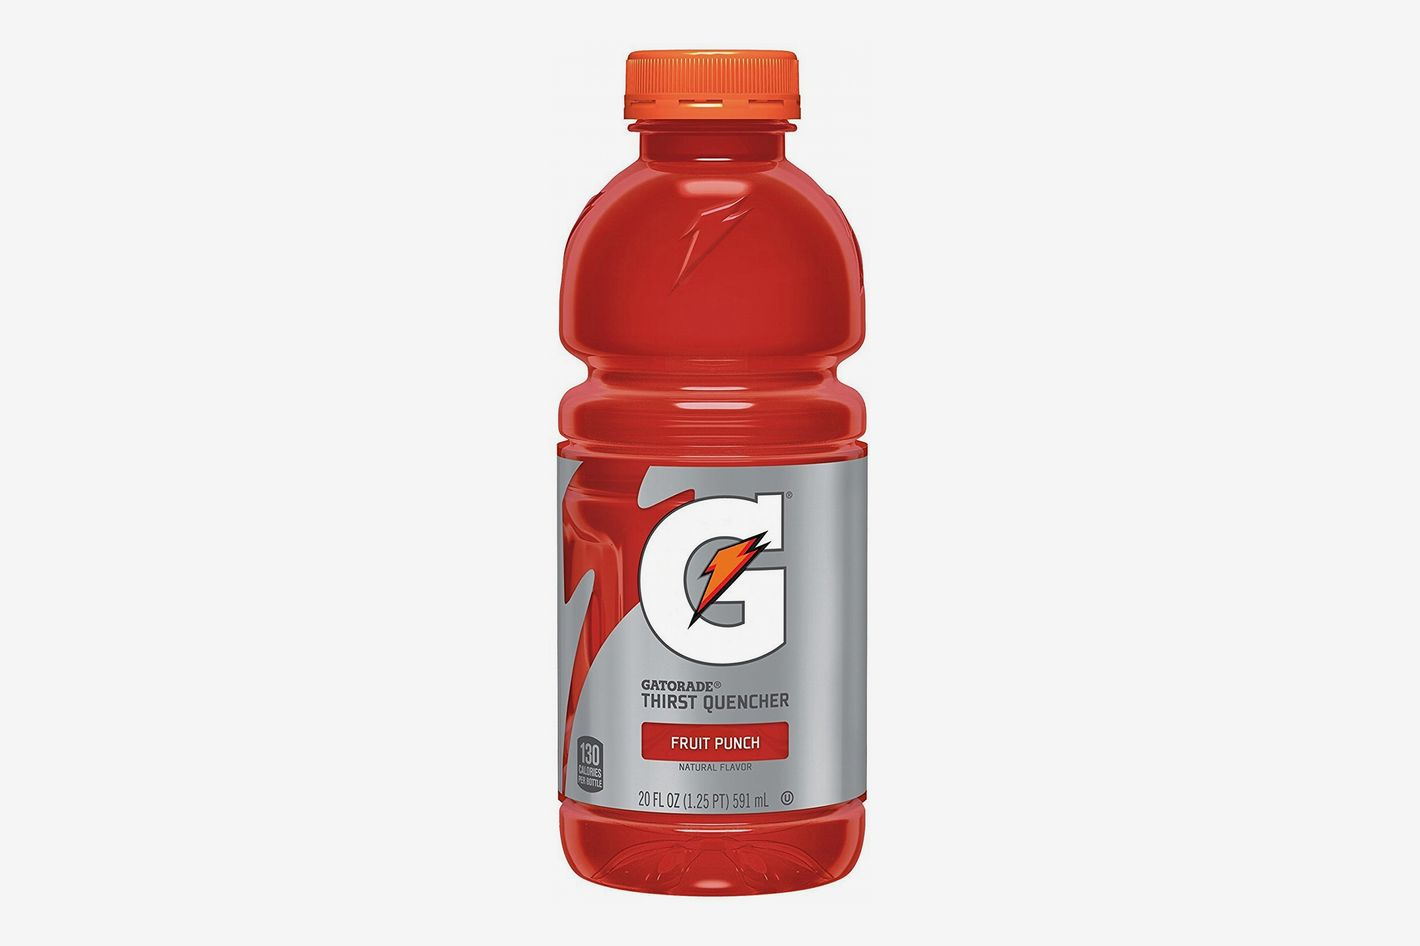 Gatorade Thirst Quencher Fruit Punch, Pack of 12